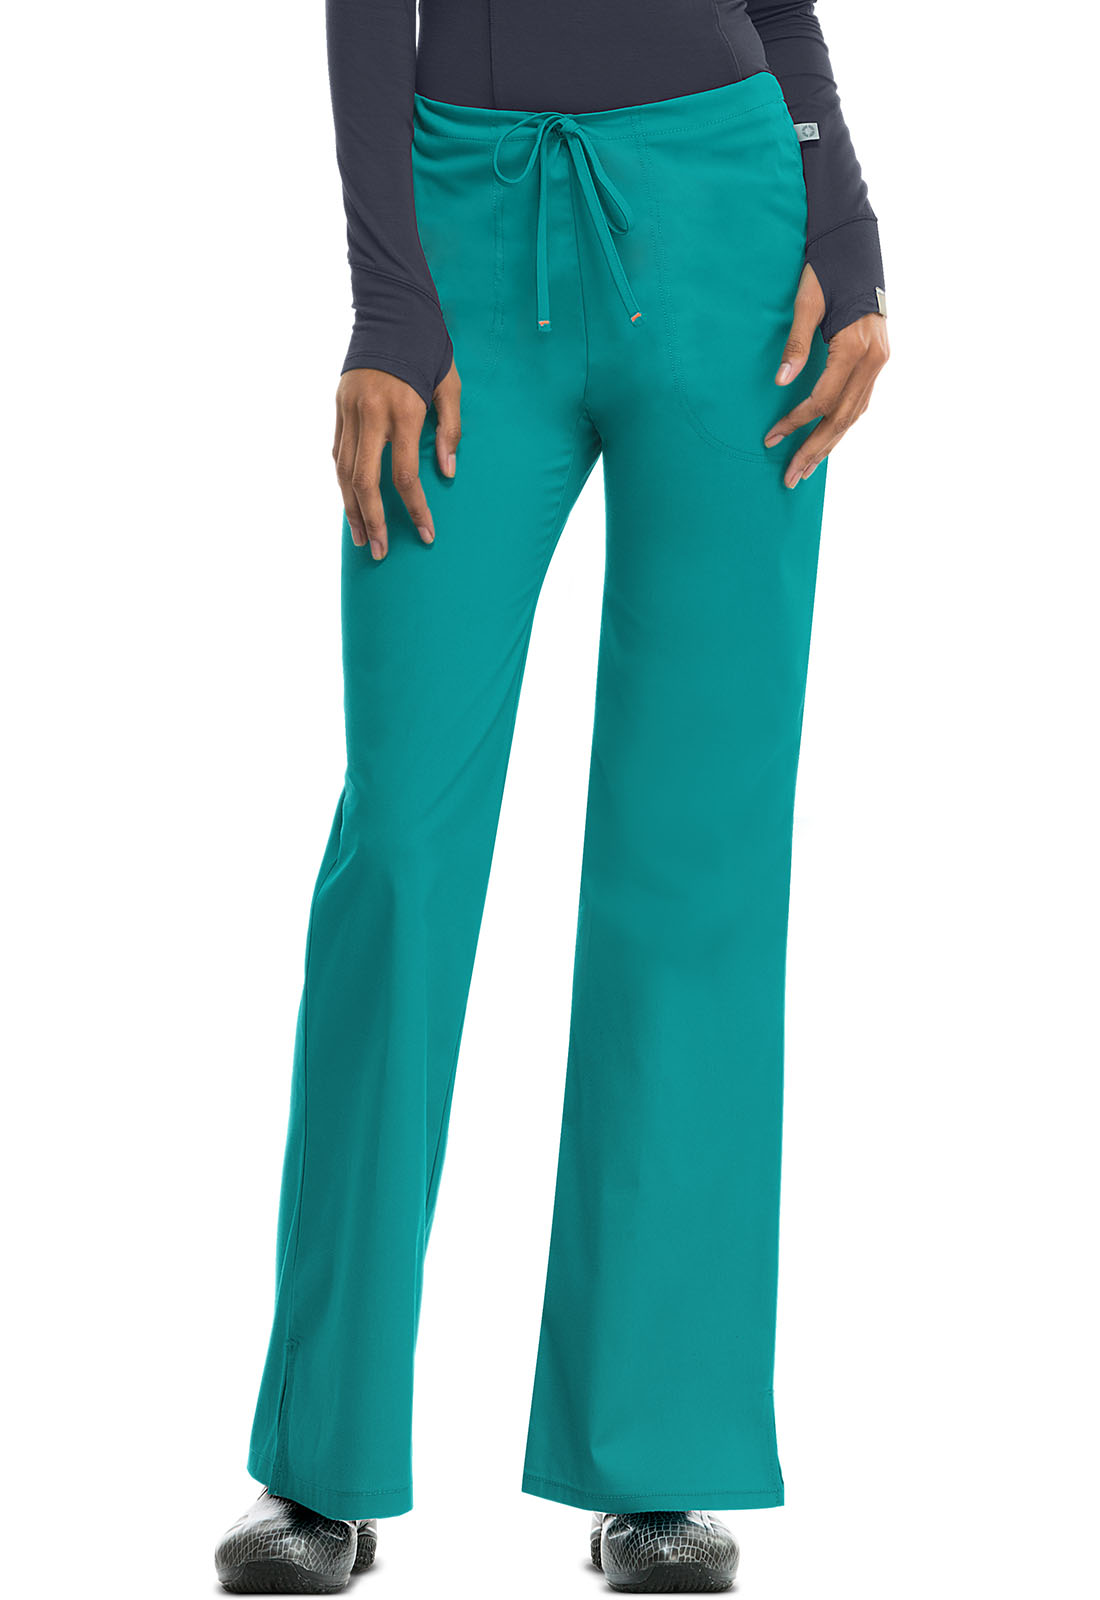 White Code Happy Scrubs Mid Rise Drawstring Pants 46002A WHCH Antimicrobial